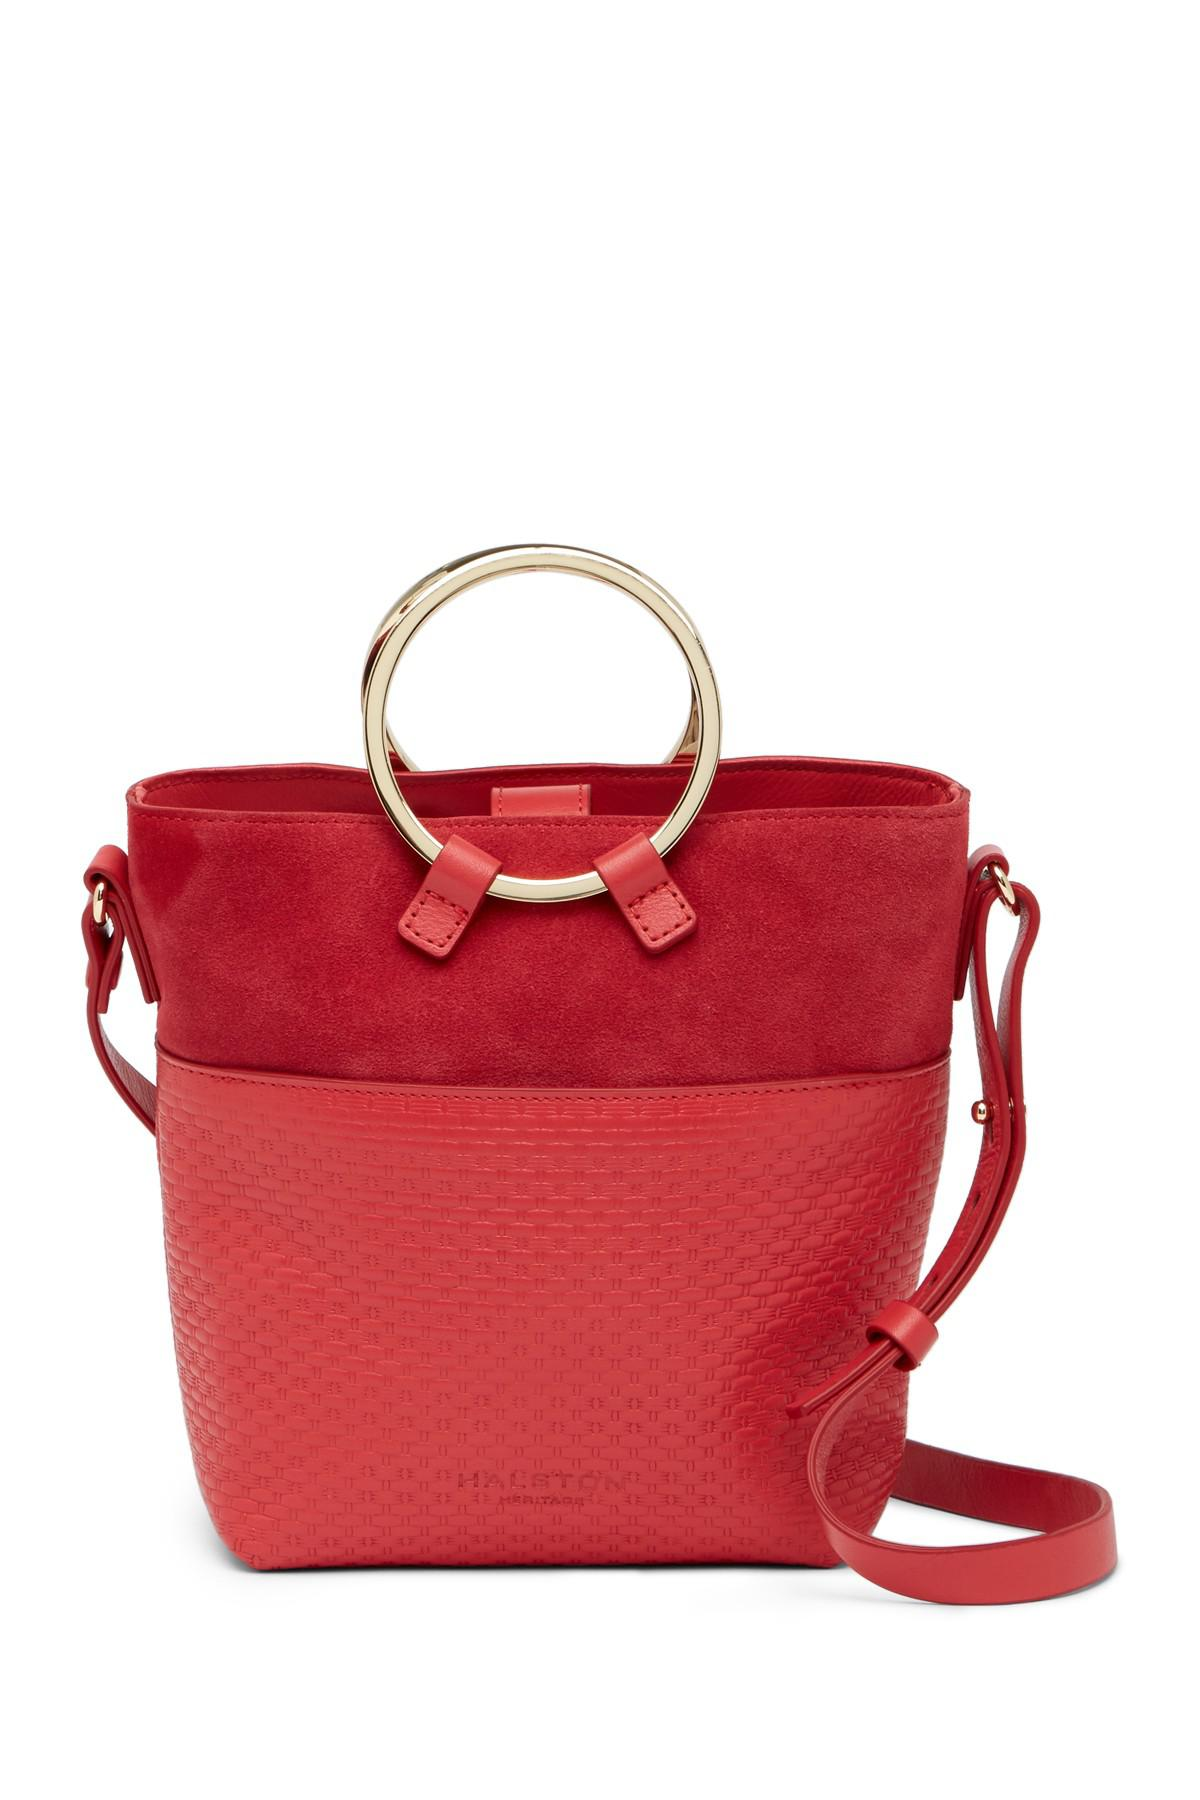 f0938b9bfcf6 Lyst - Halston Small Embossed Leather Crossbody Bucket Bag in Red